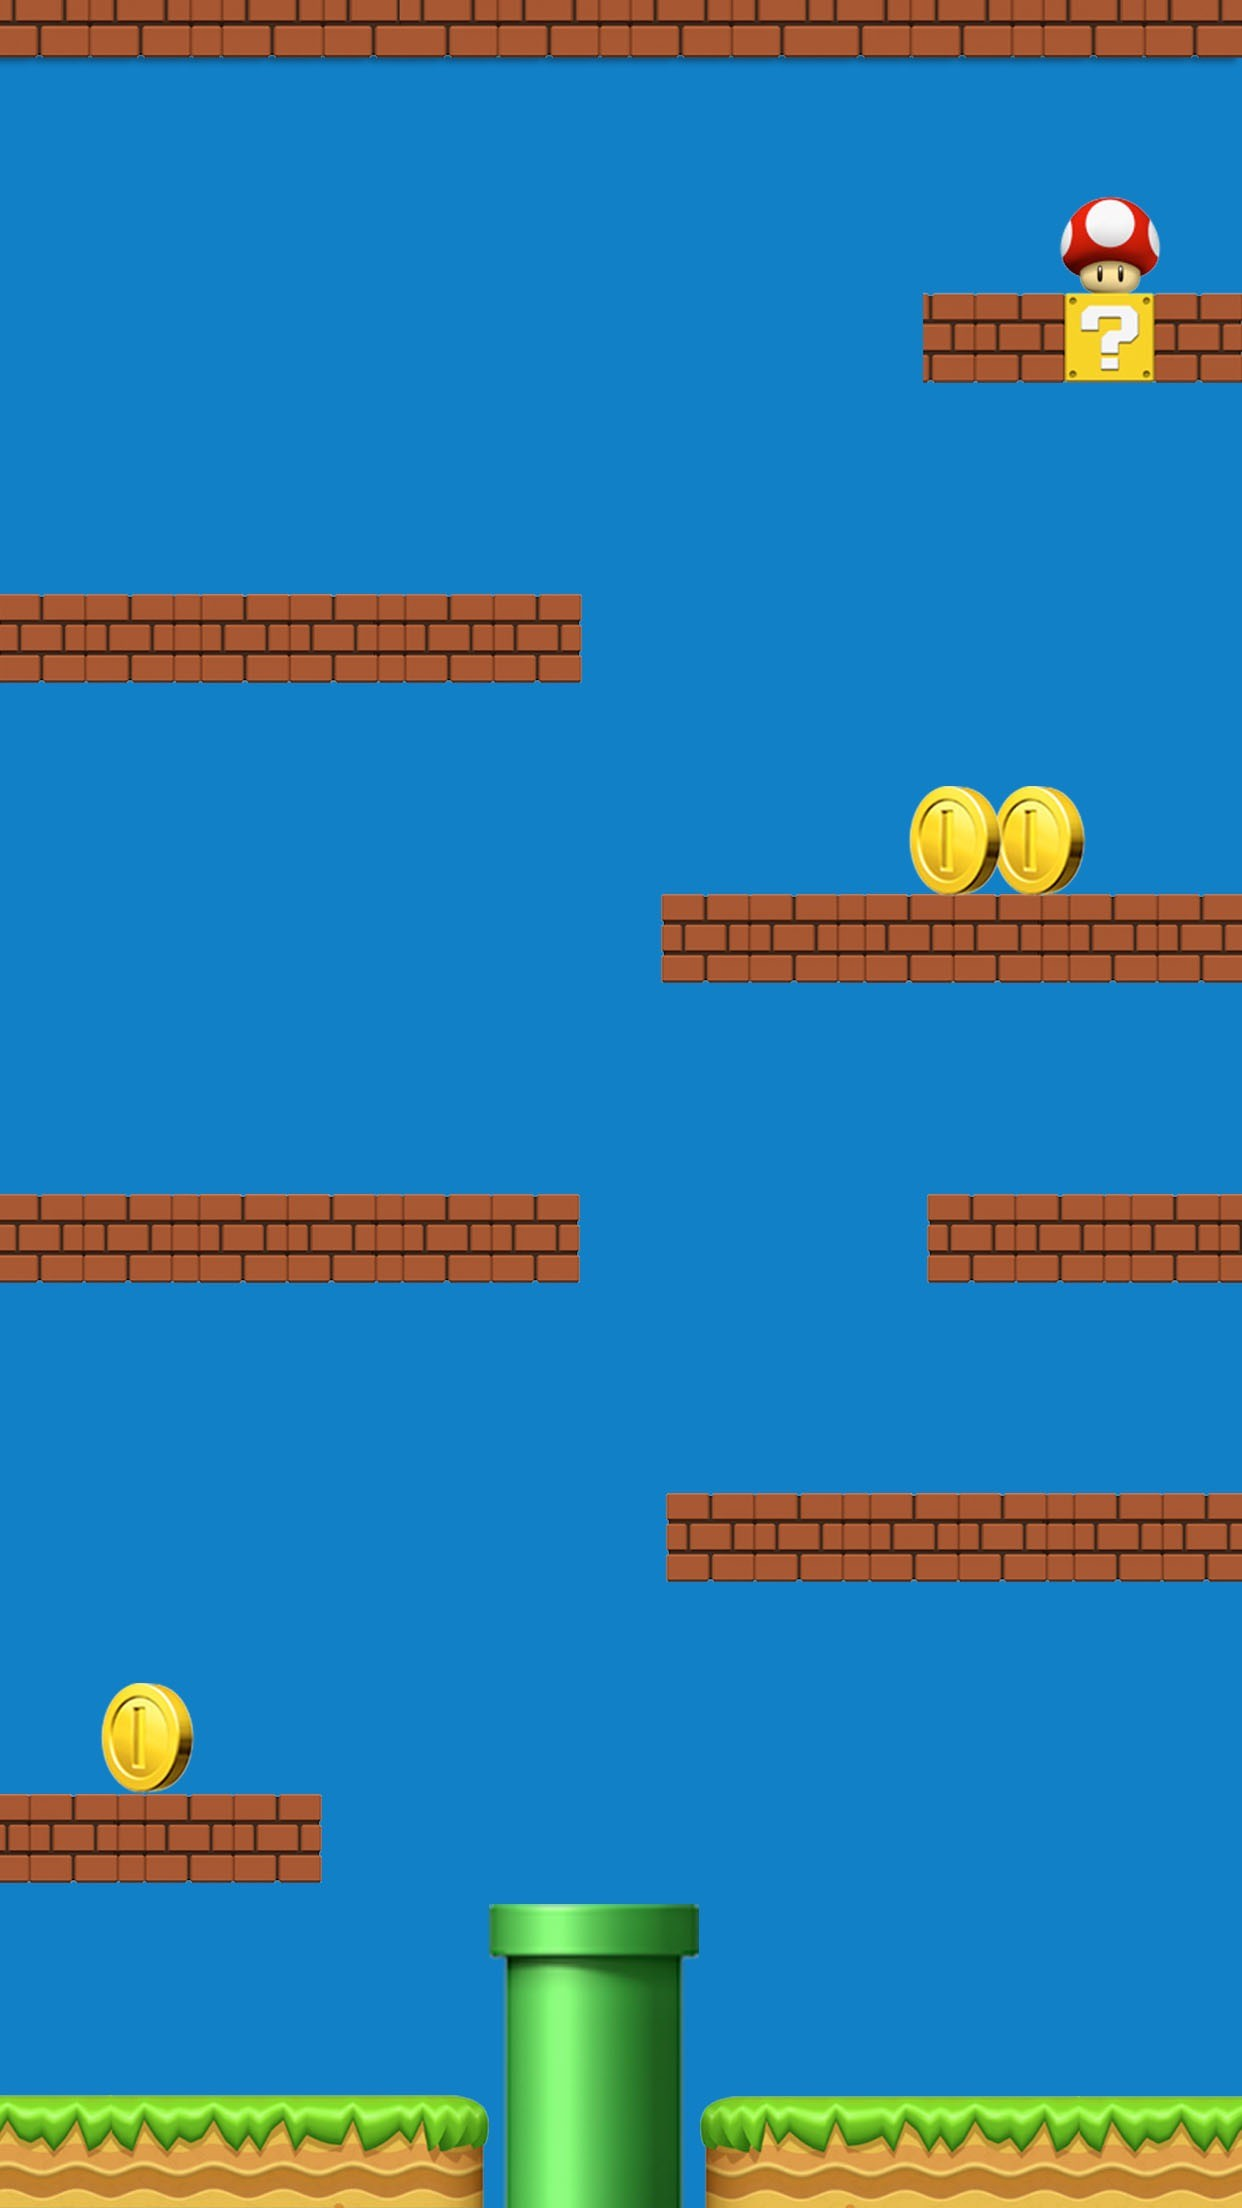 1242x2208 Shelves Super Mario Colorful Awesome Ð¡omputer Graphics. Iphone  BackgroundsWallpaper BackgroundsPhone ...